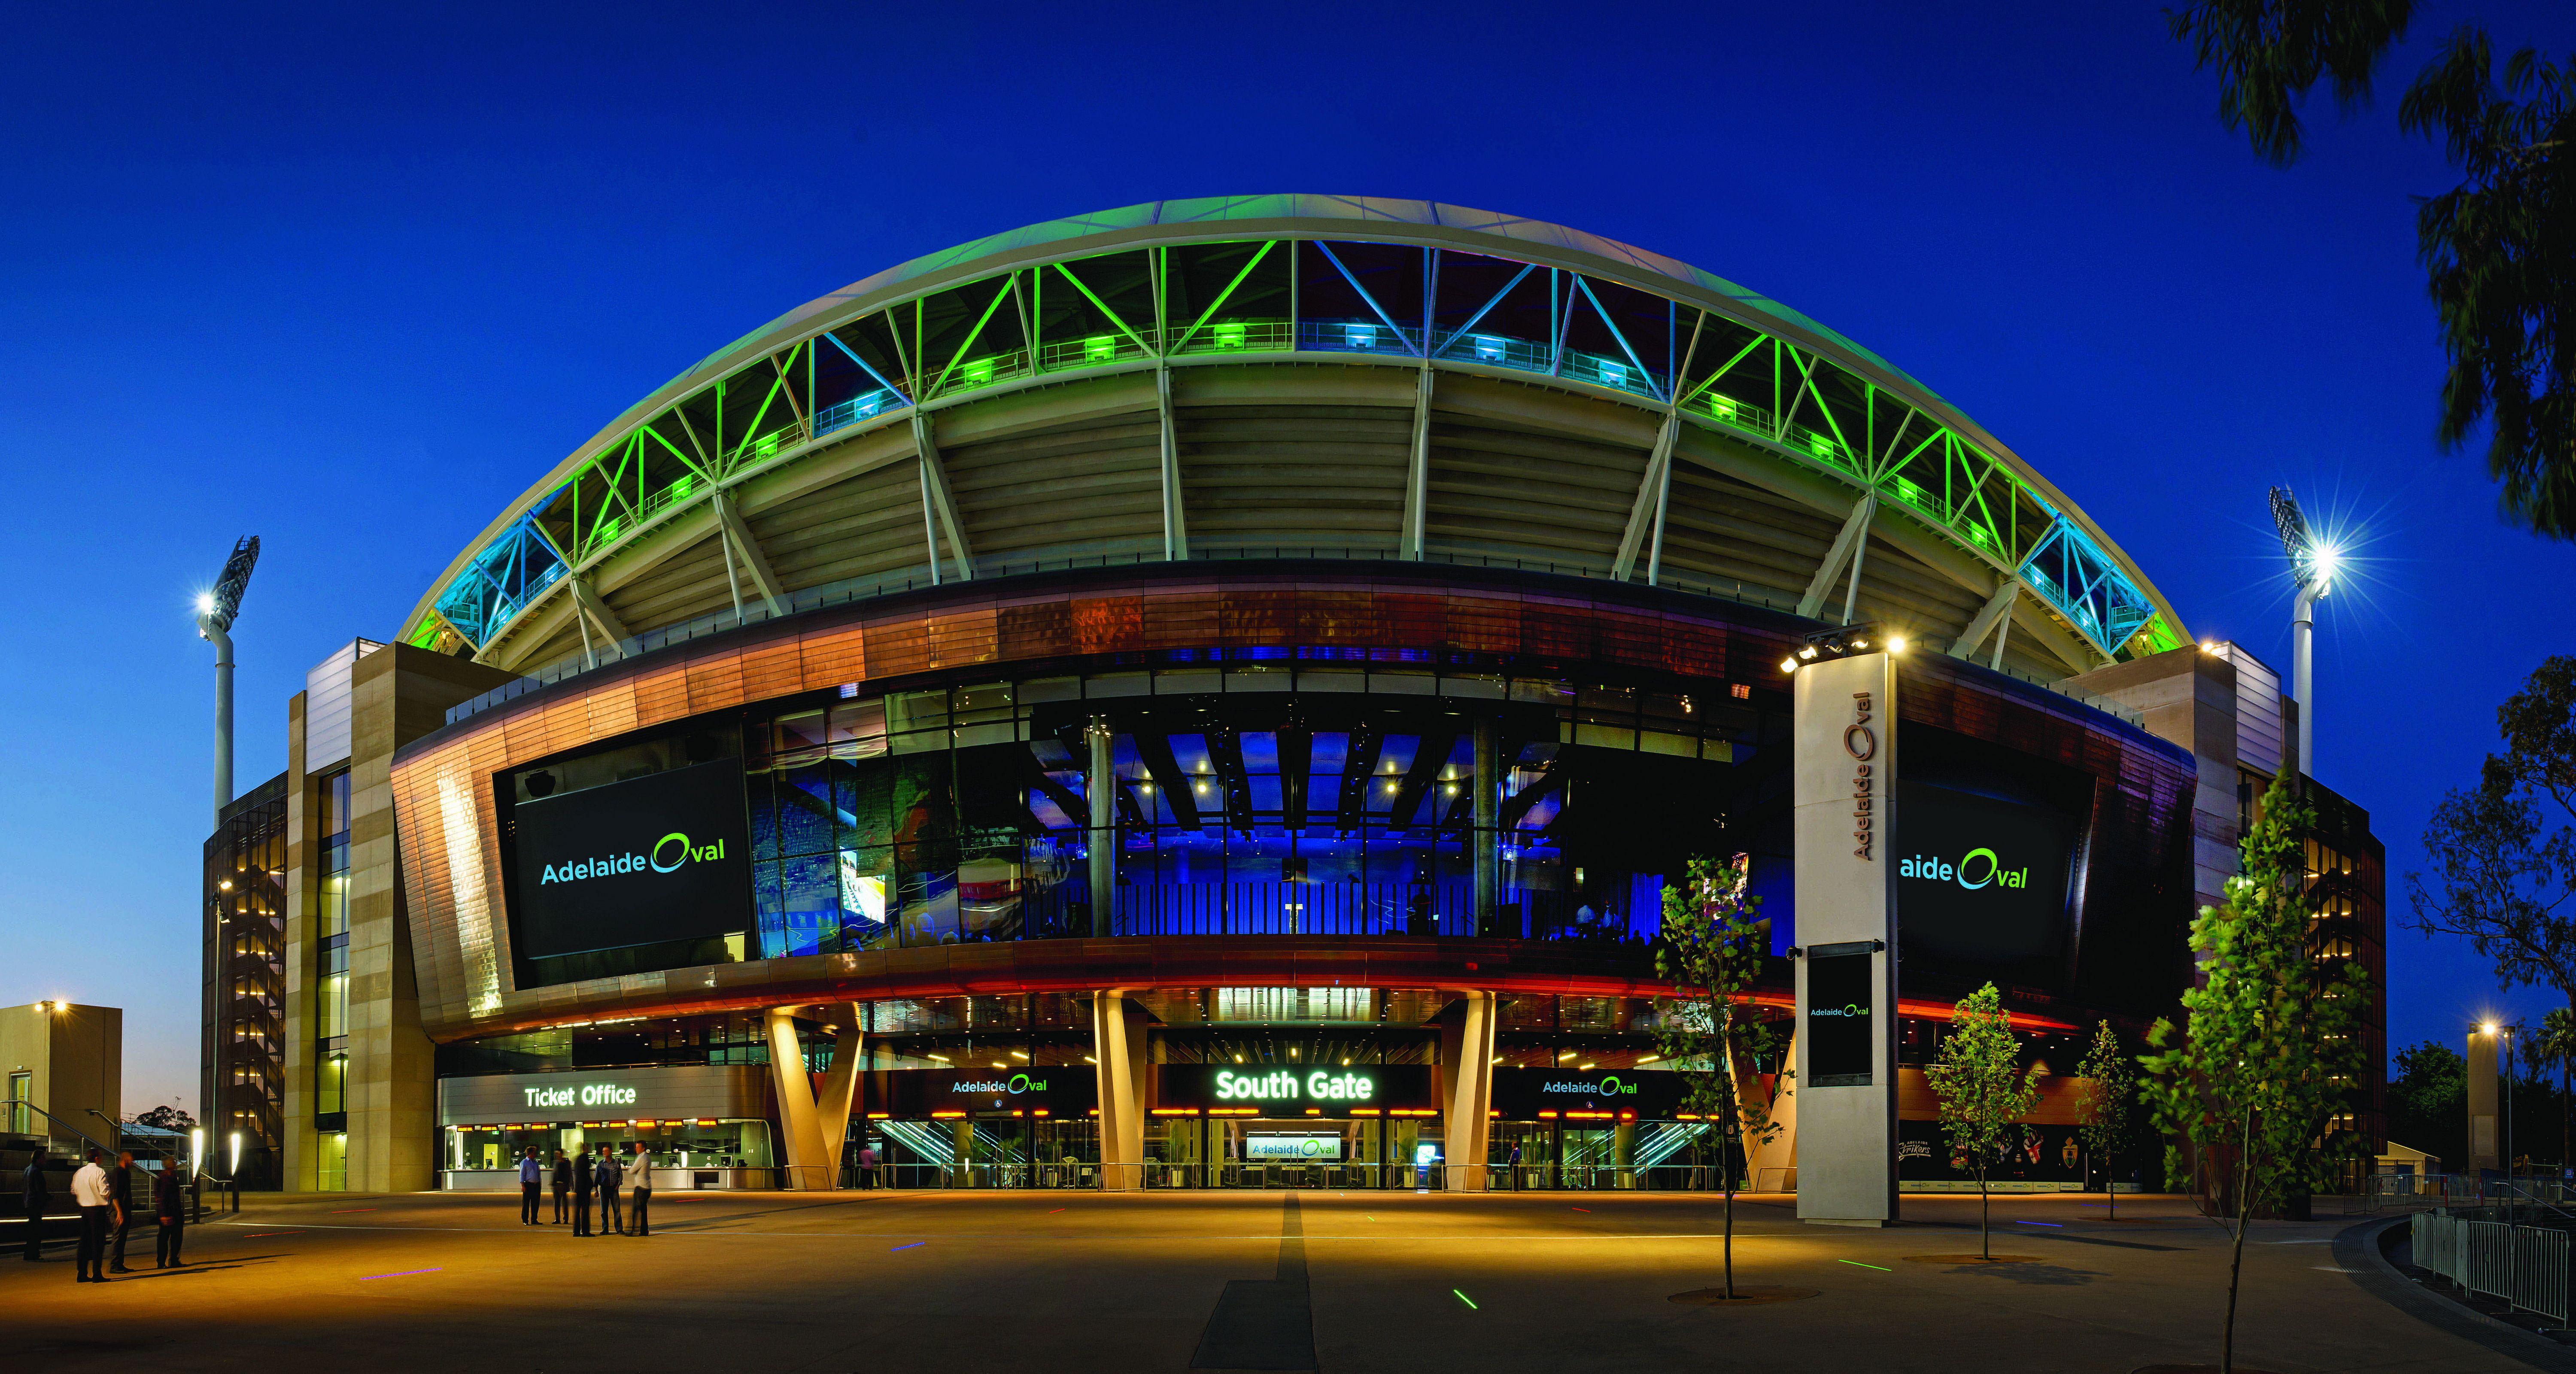 Adelaide Oval Stadium, Australia wallpapers and image